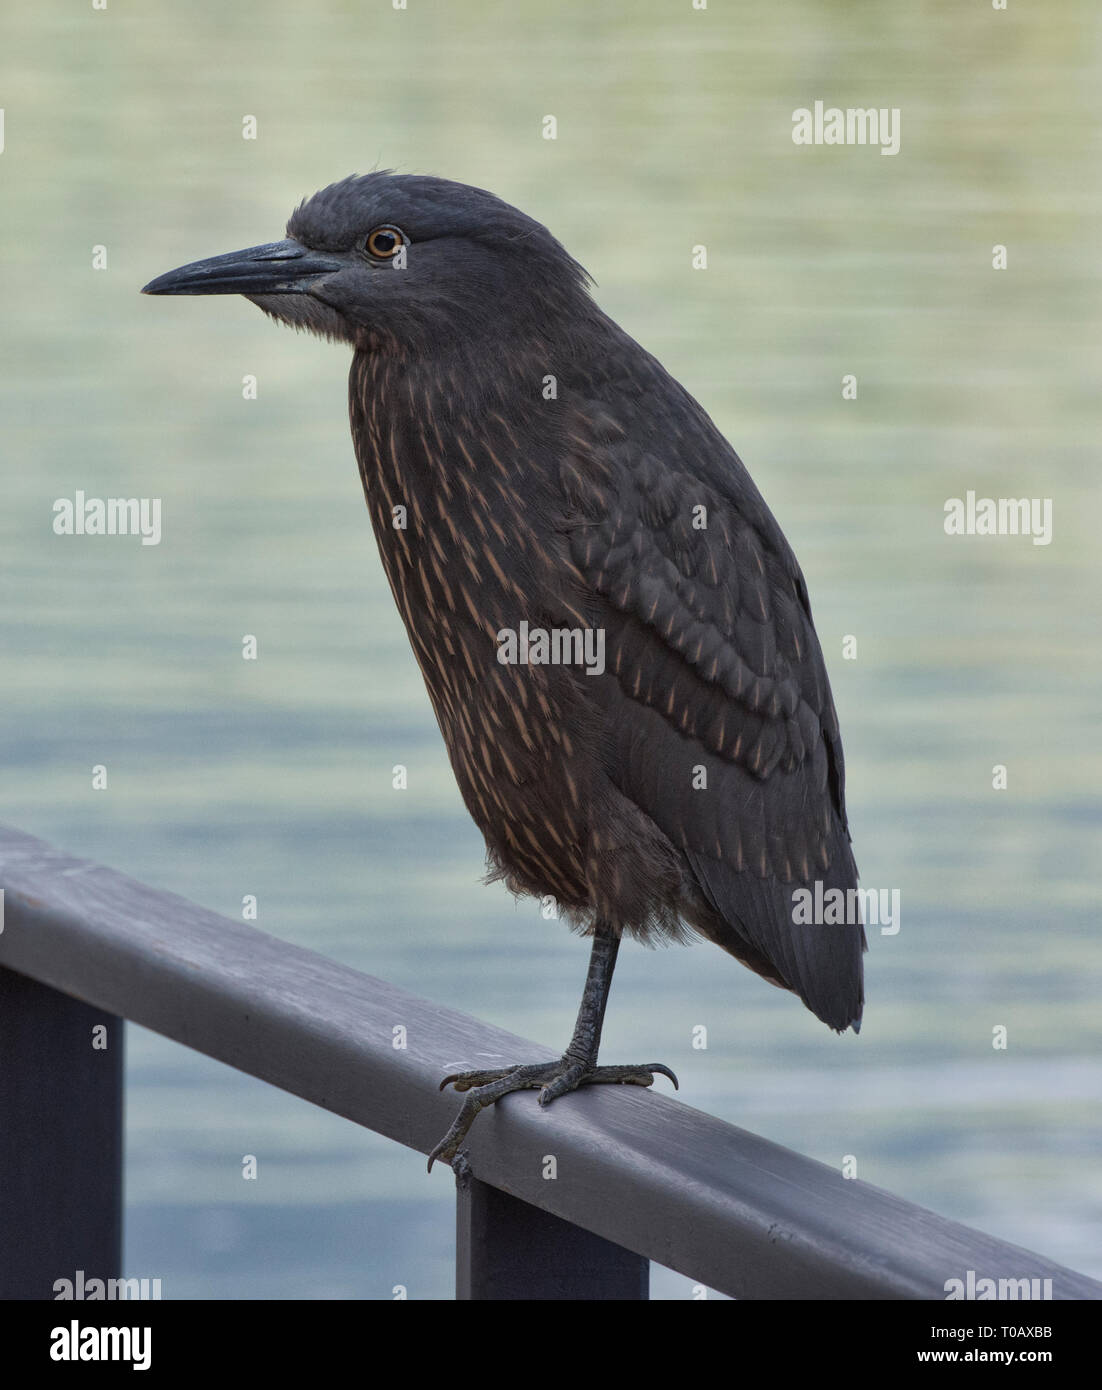 Black crowned night heron (Nycticorax nycticorax), Puyuhuapi fiord, Patagonia, Aysen, Chile - Stock Image